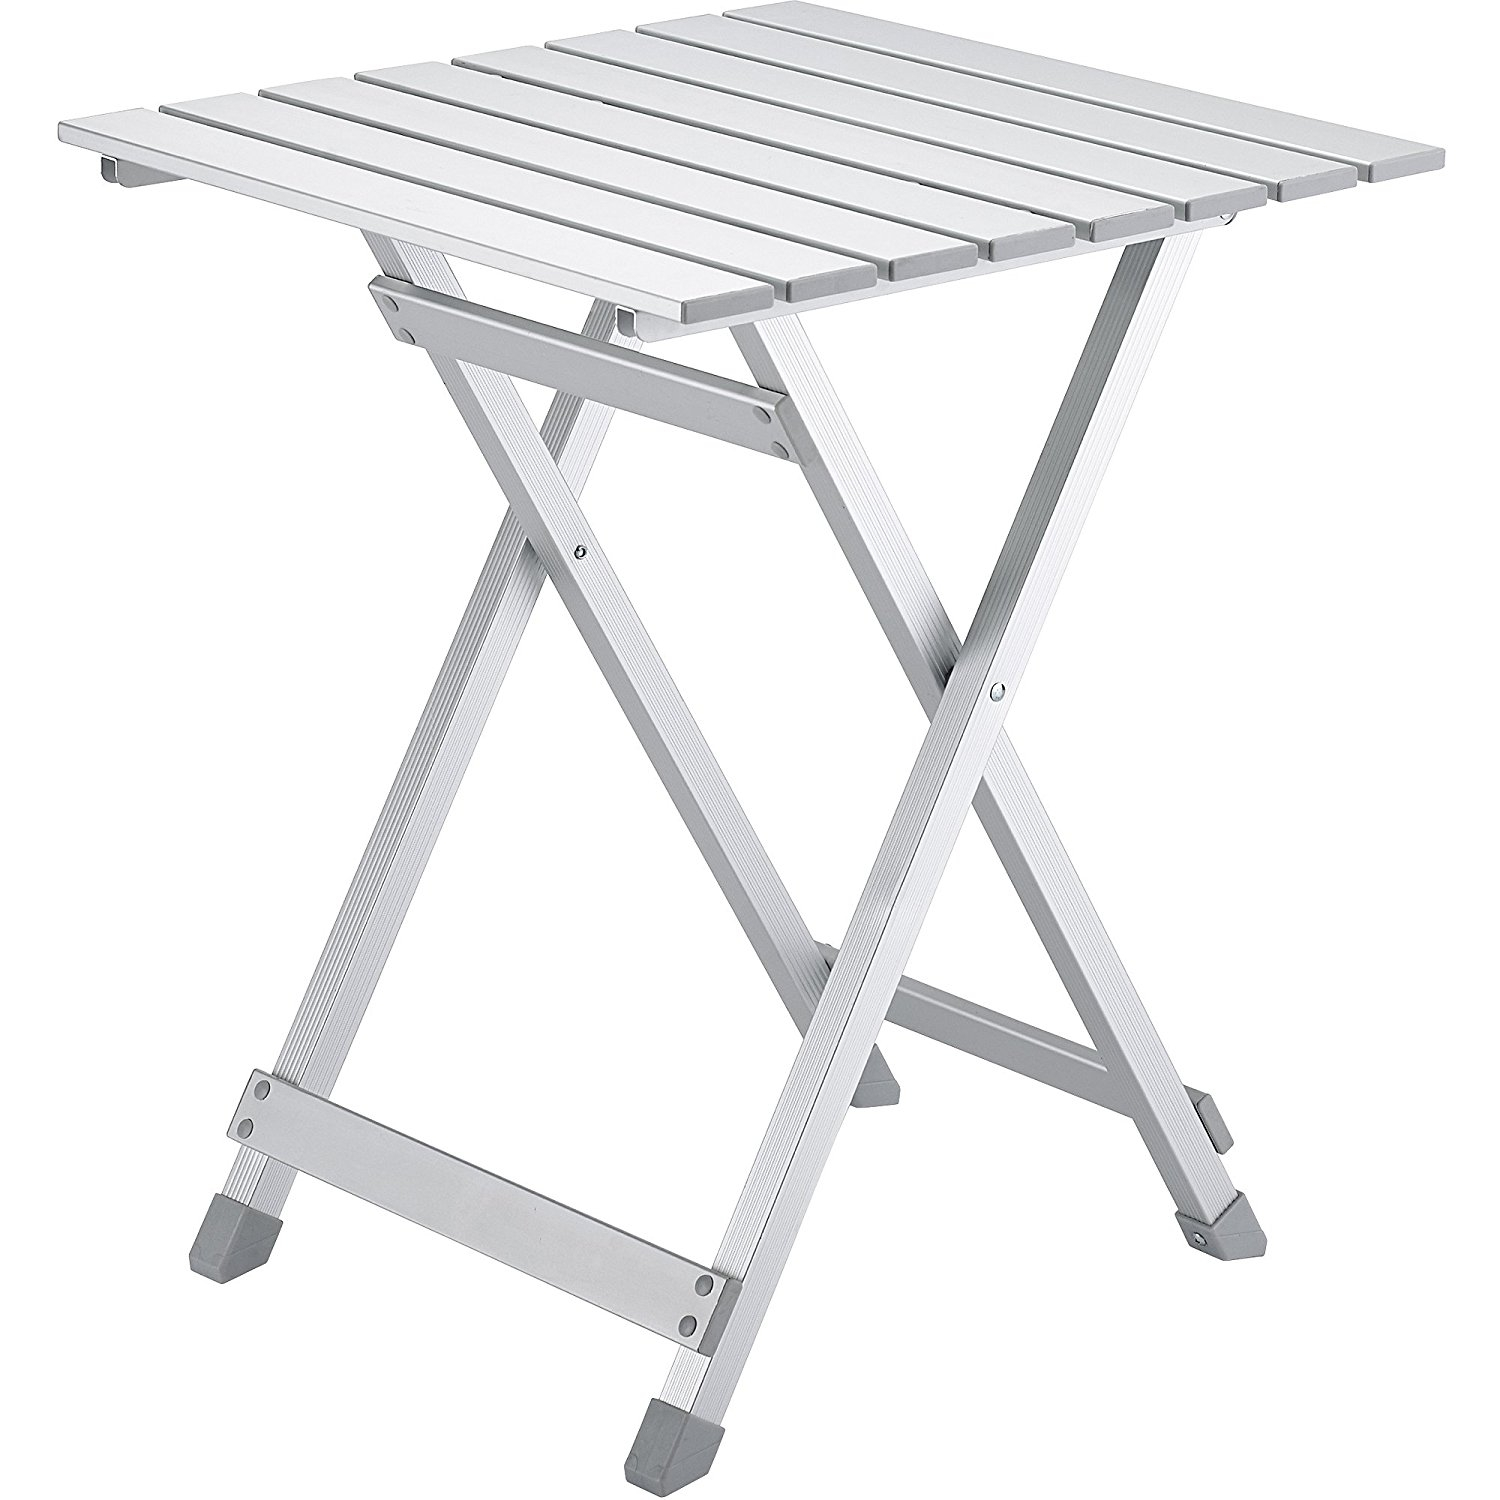 Ozark Trail, Aluminum Roll Top Camp Table Lightweight Construction by Ozark Trail